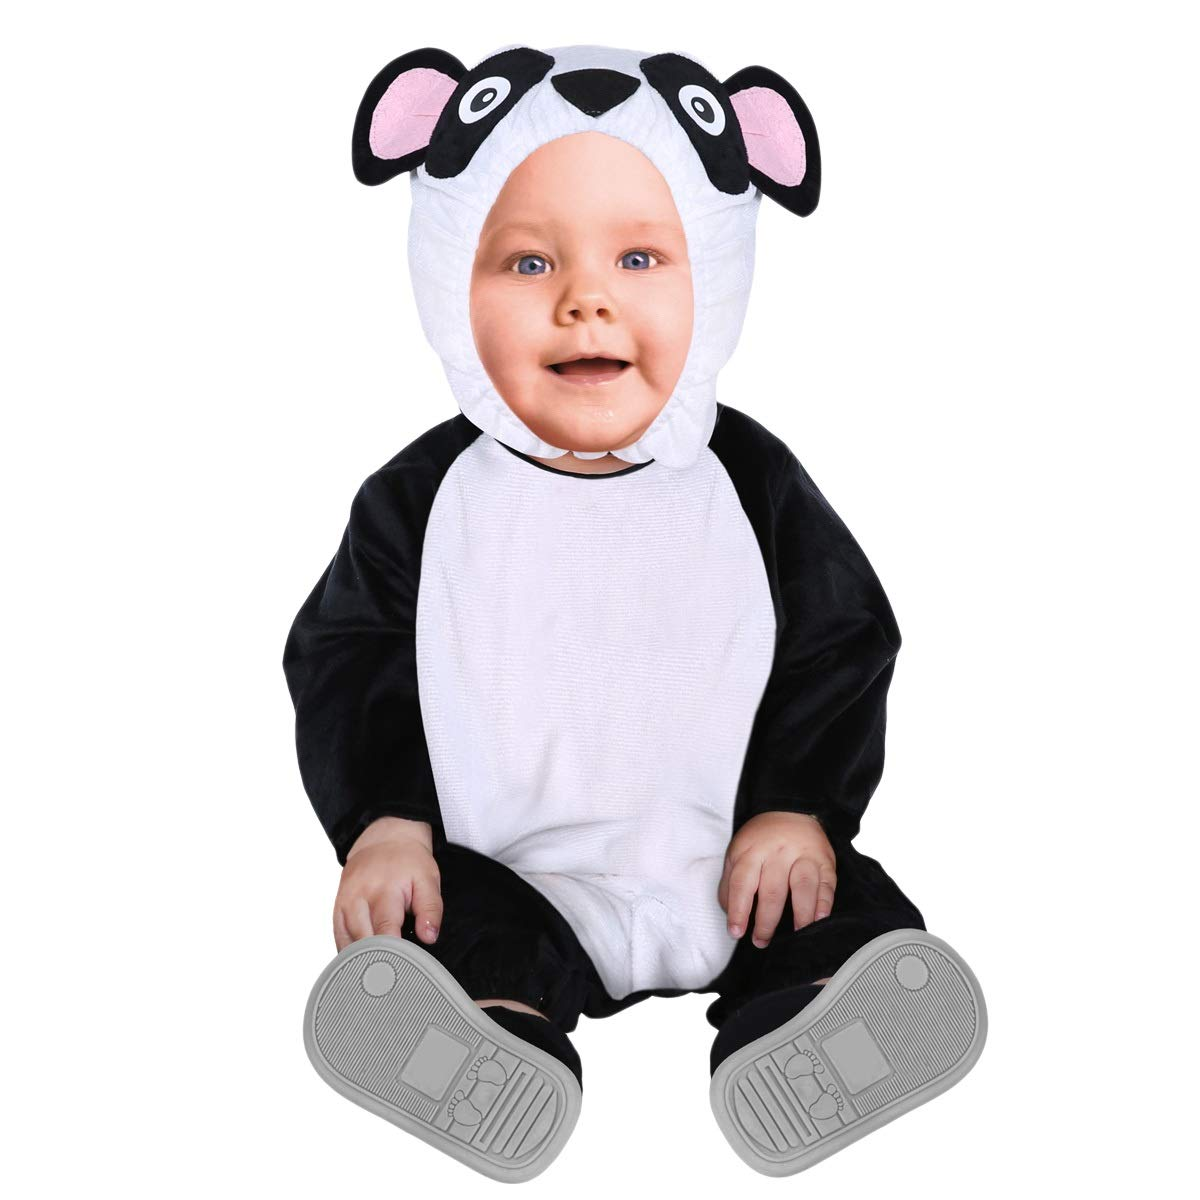 Shanghai Story Baby Animal Hooded Romper Flannel Jumpsuit Unisex Infant Pajamas Outfits Costume